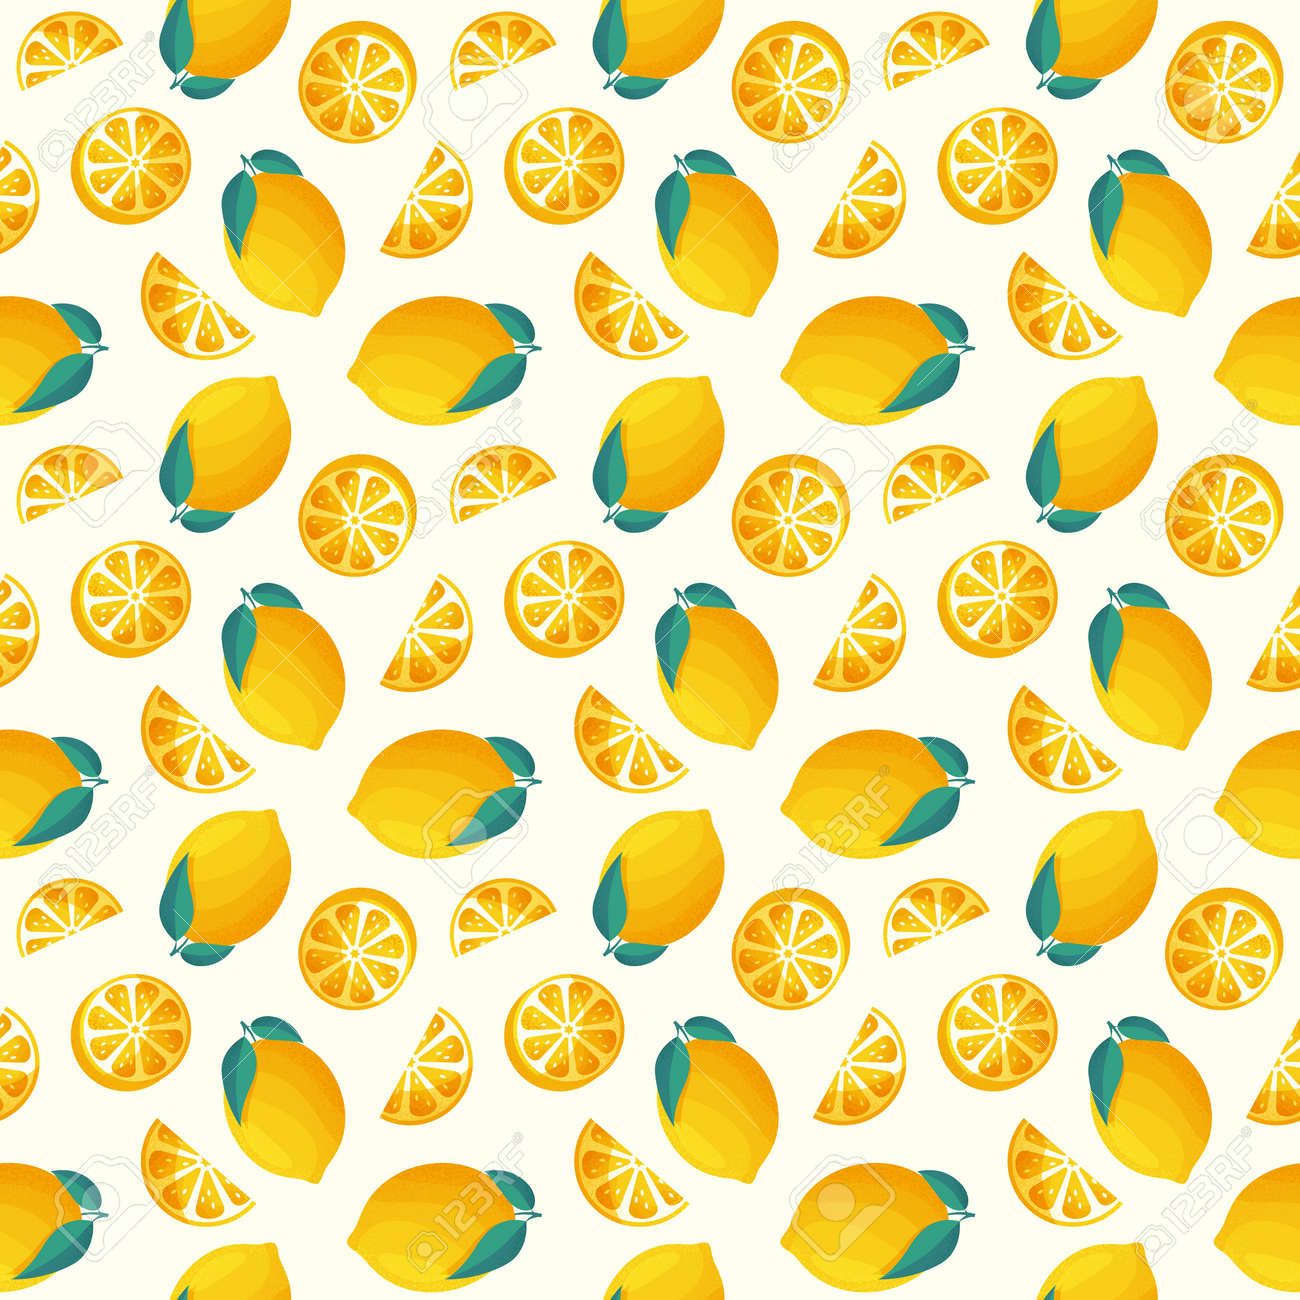 Seamless pattern with lemons. Vector background with juicy citrus fruit and leaves. - 165996801